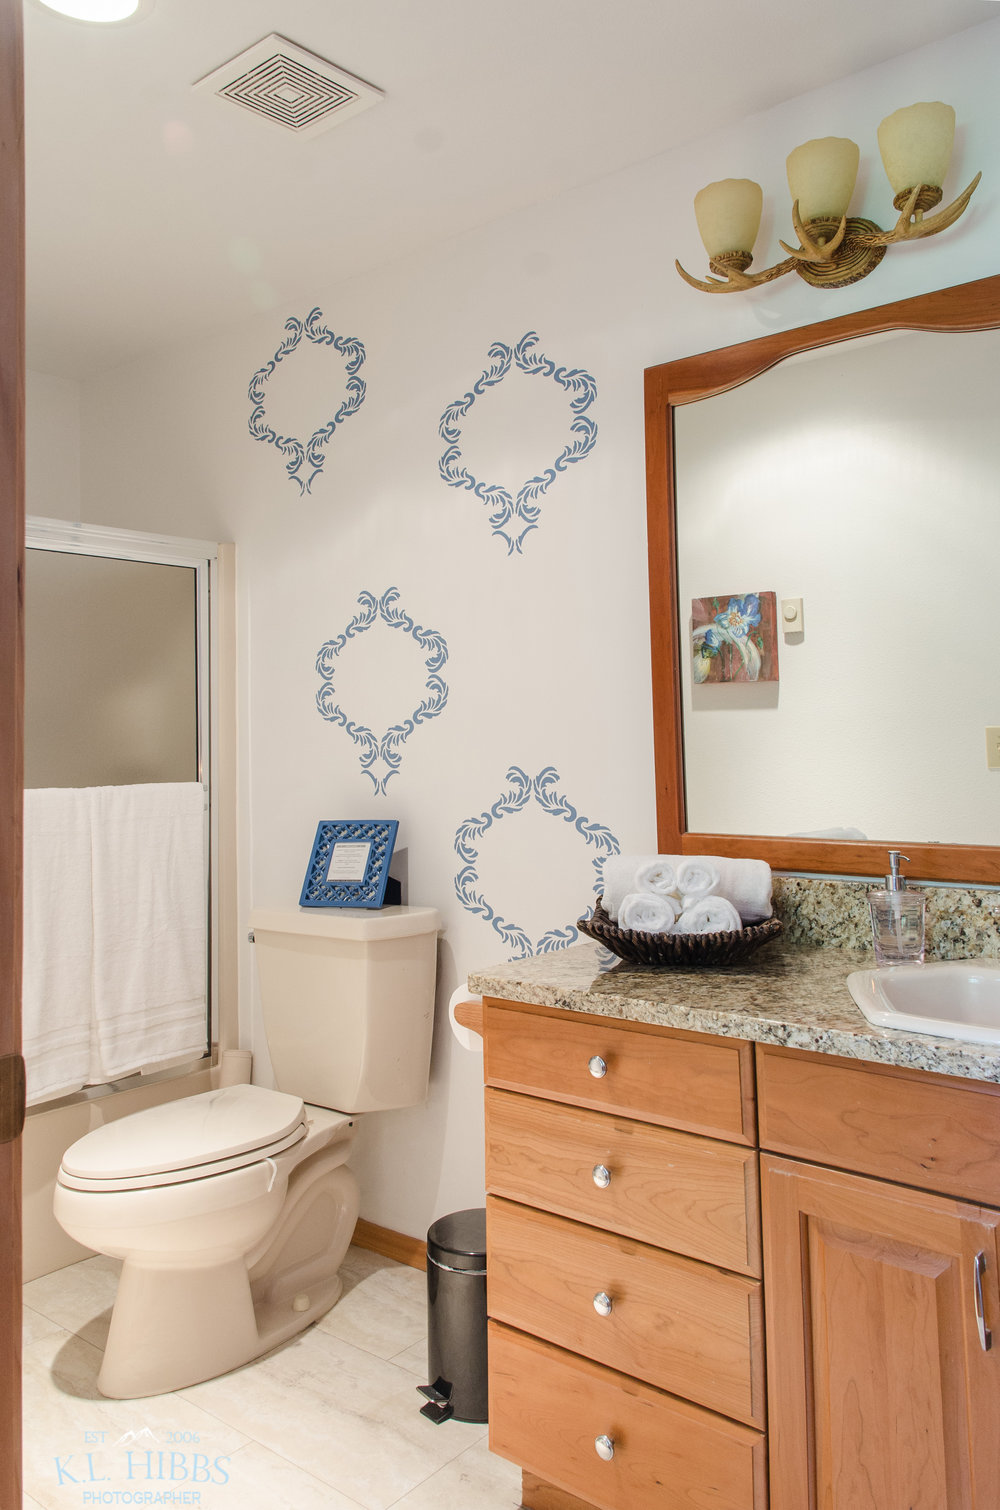 TAMARACK SUITE BATHROOM